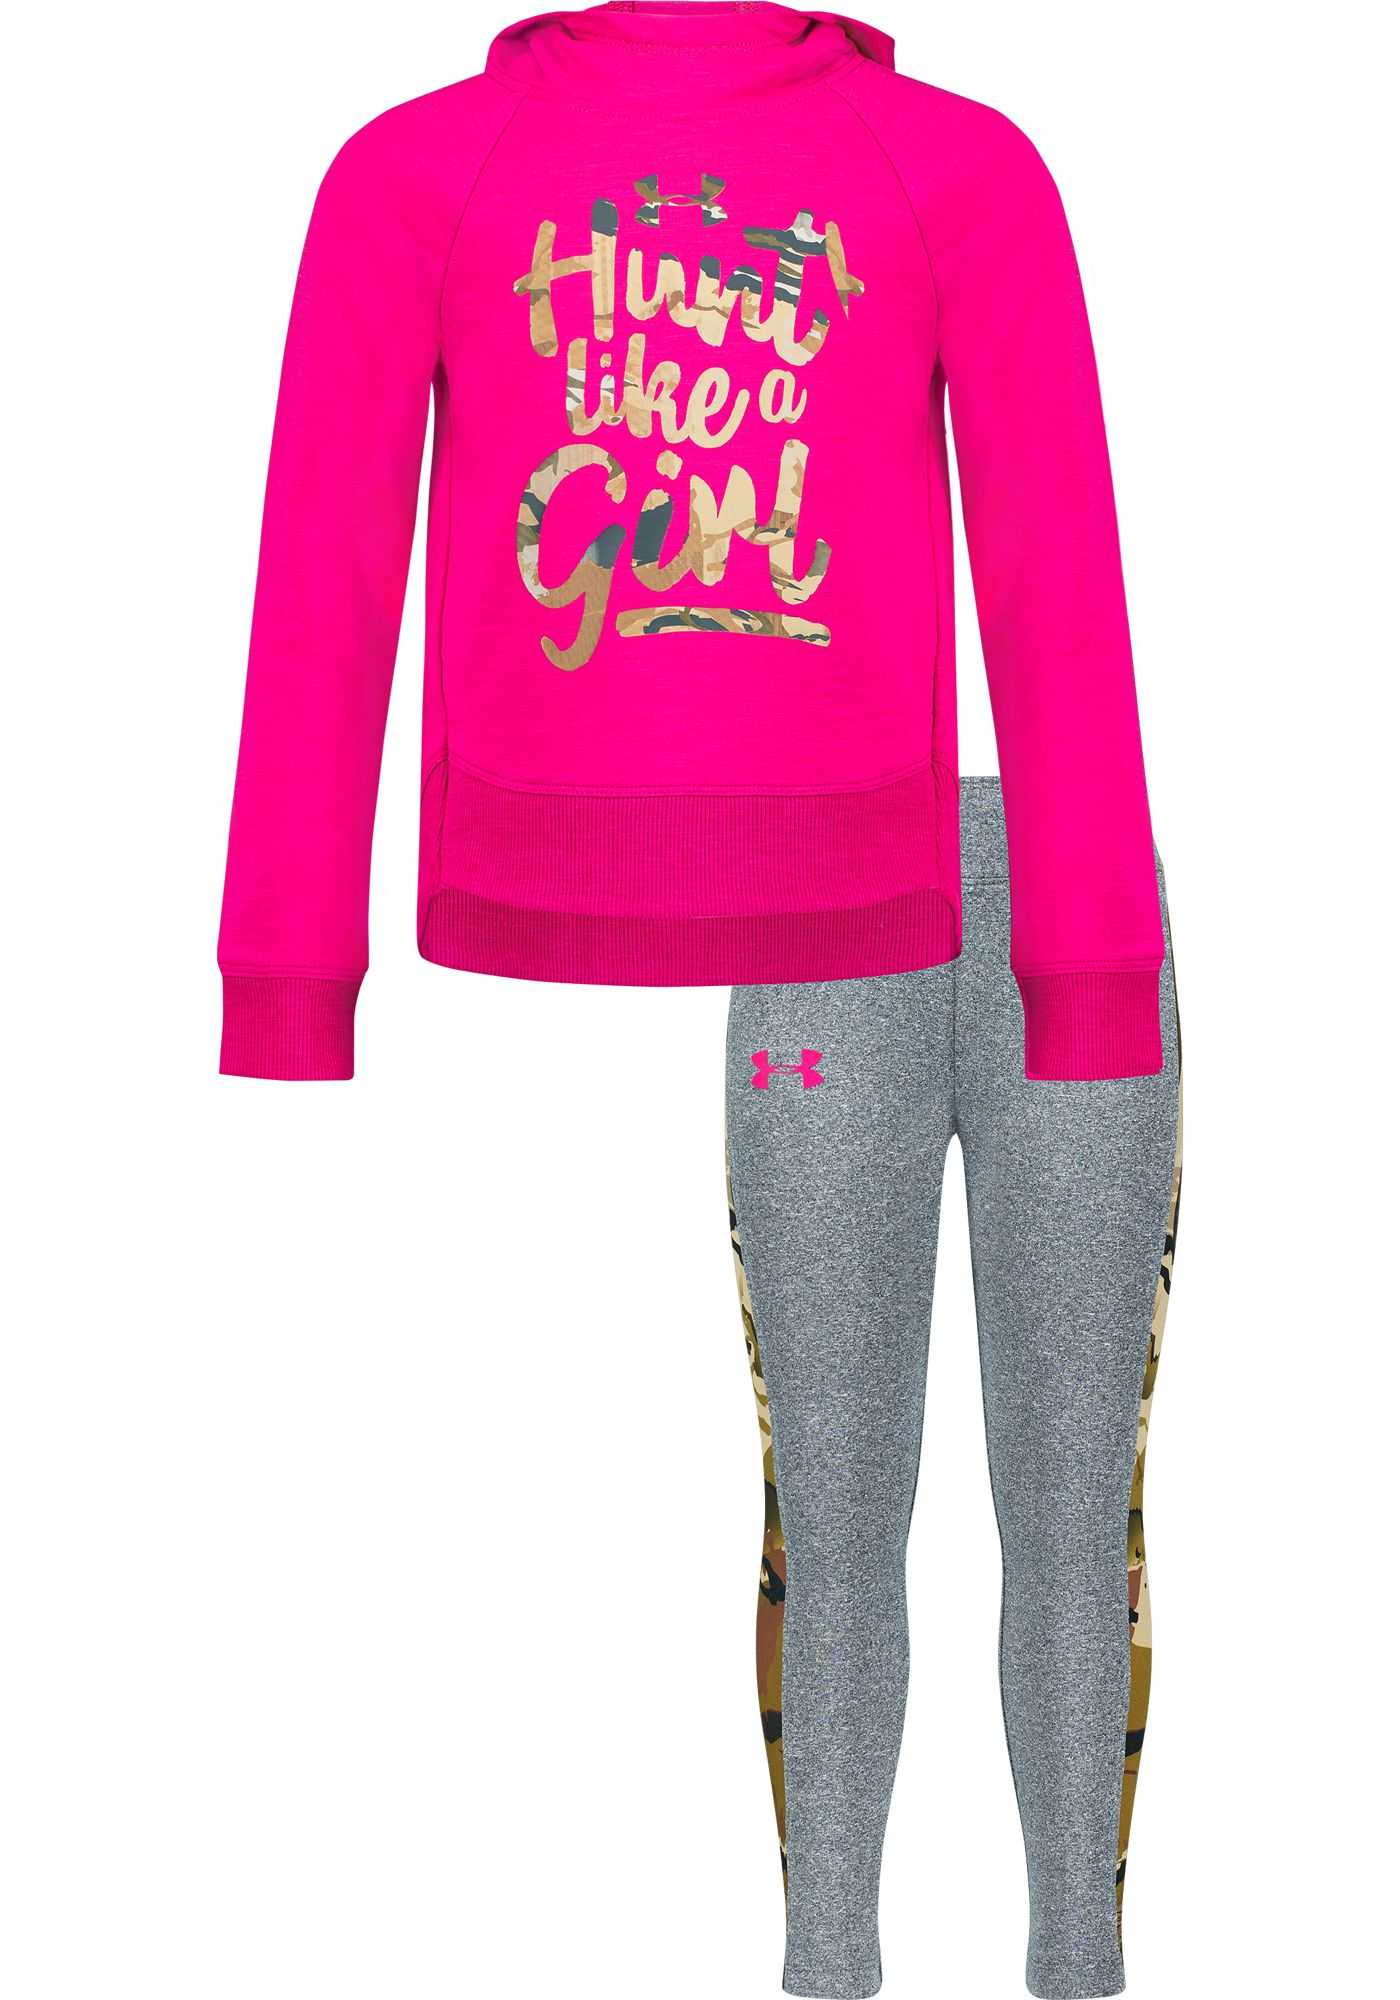 Under Armour Girls' Toddler Hunt Like a Girl Hooded Shirt and Pants Set